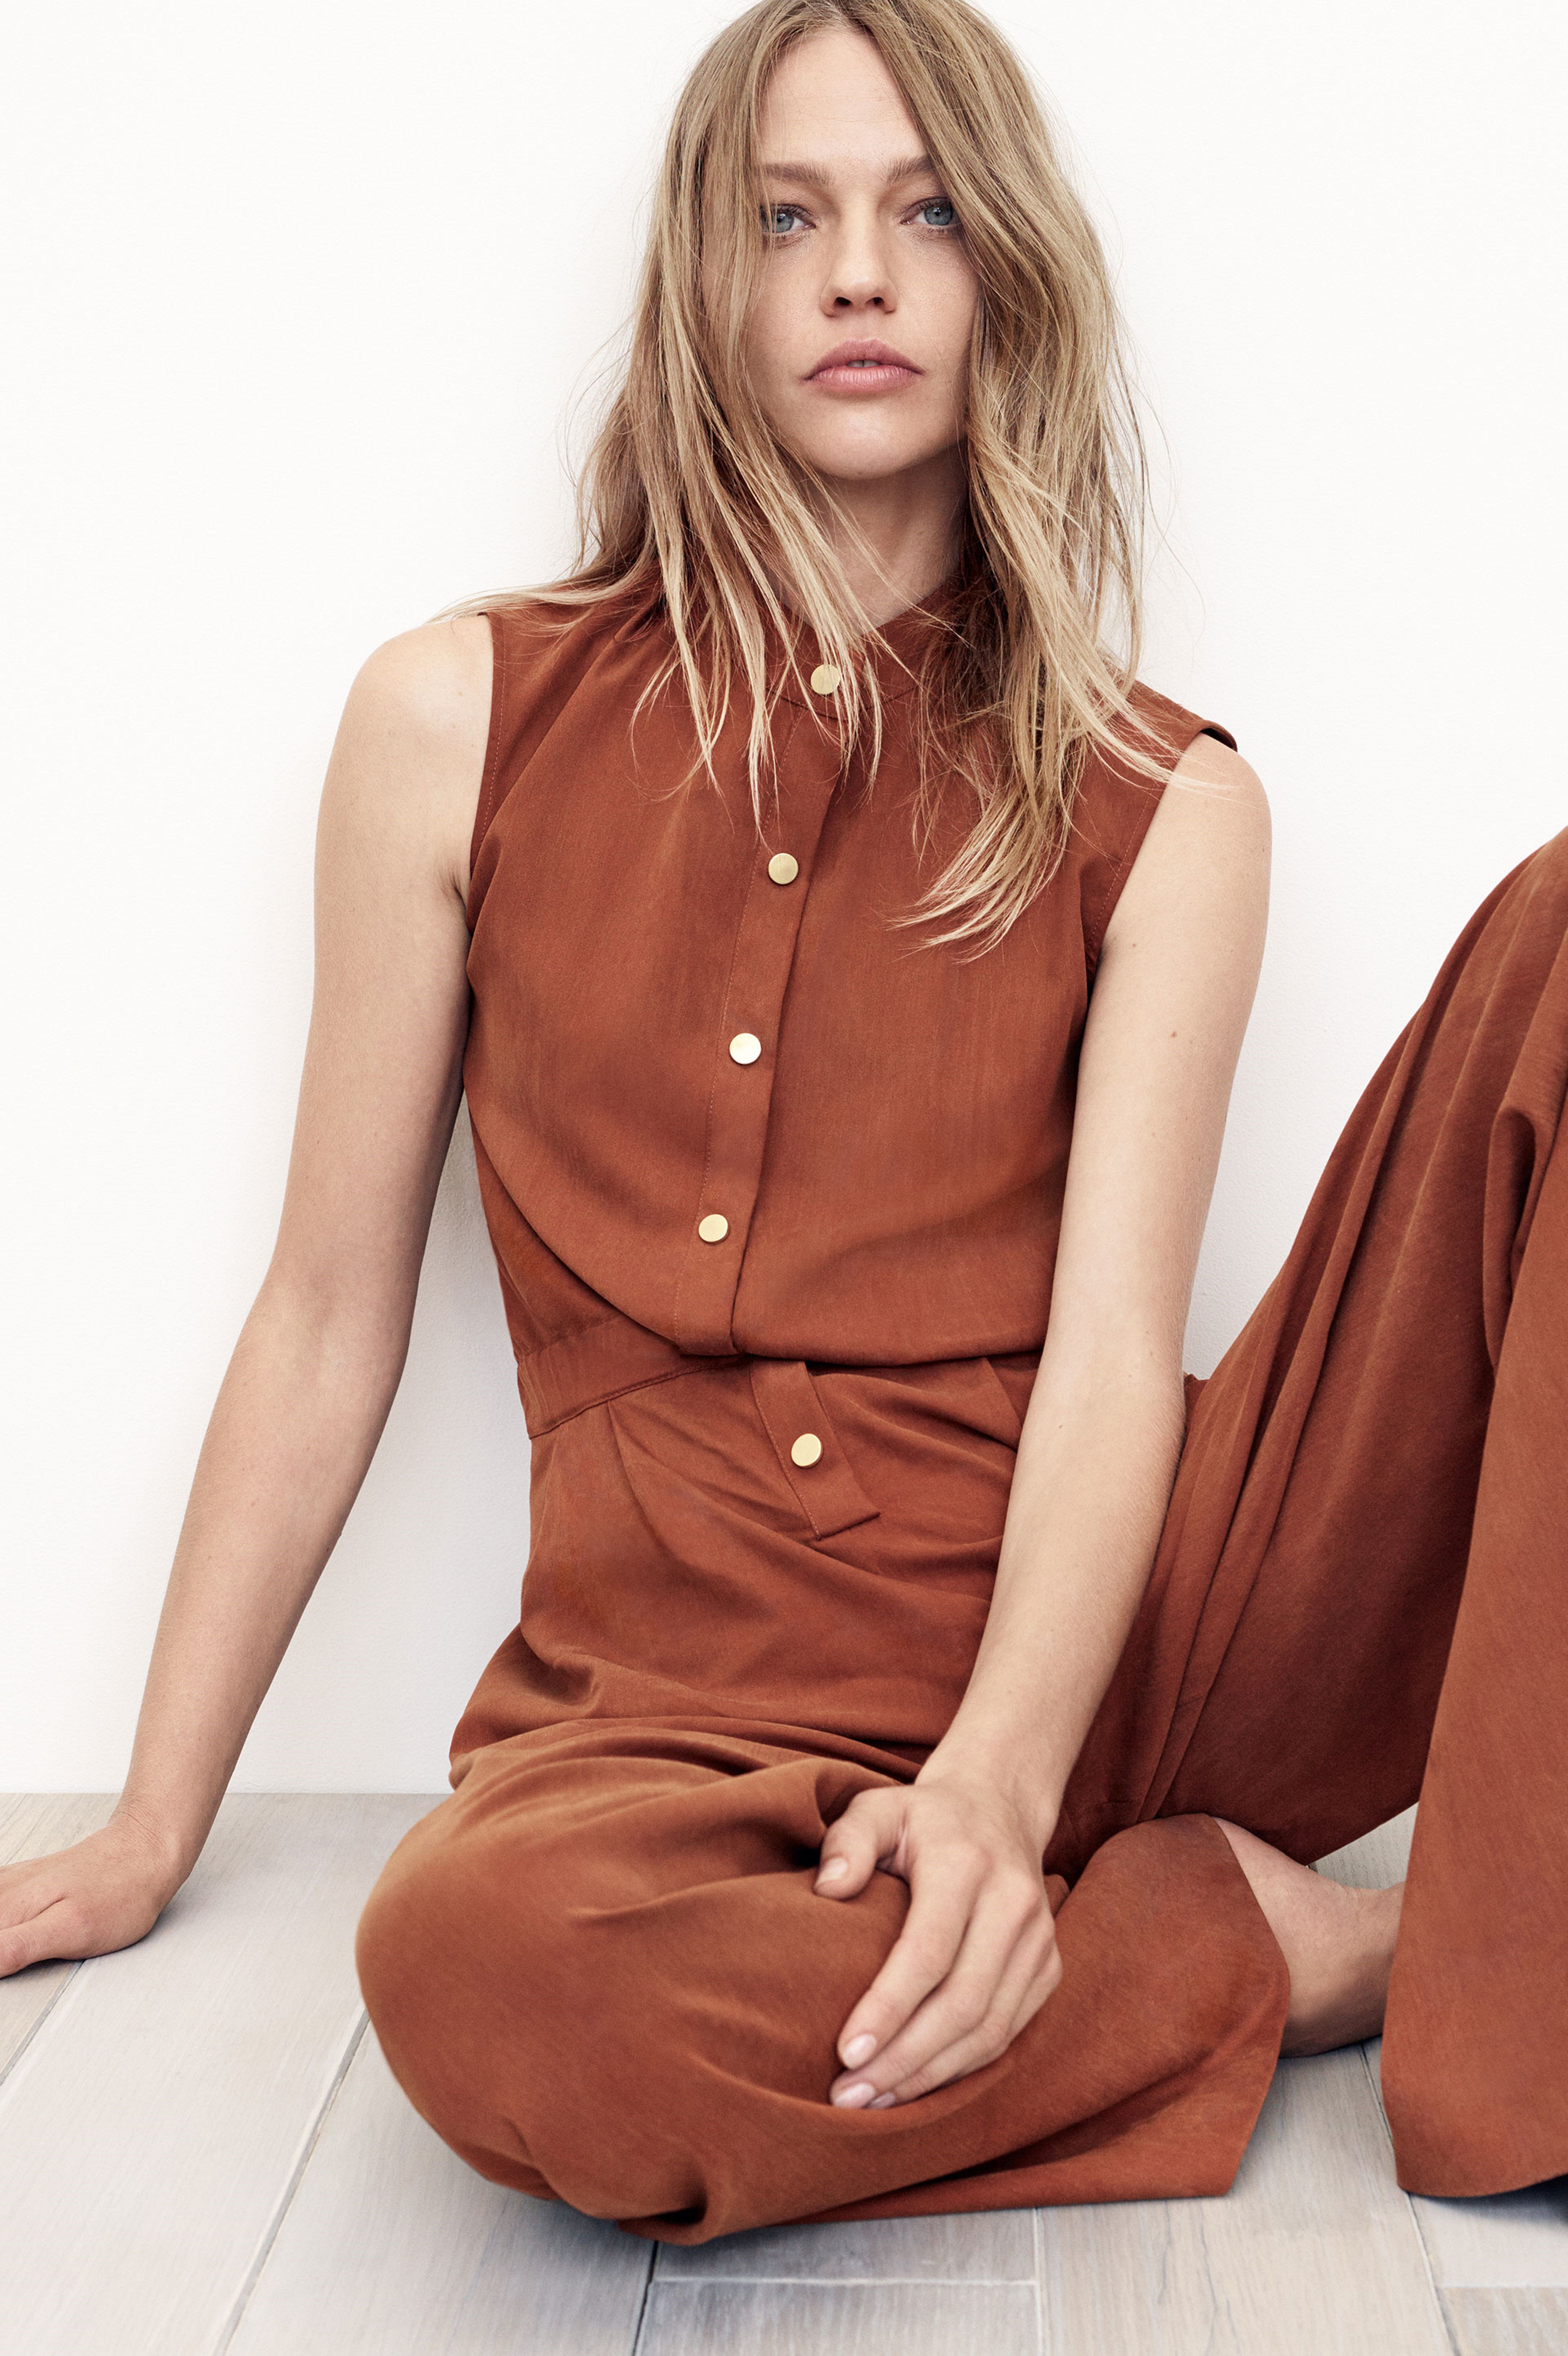 Zara's Sustainable Collection Is Giving Us